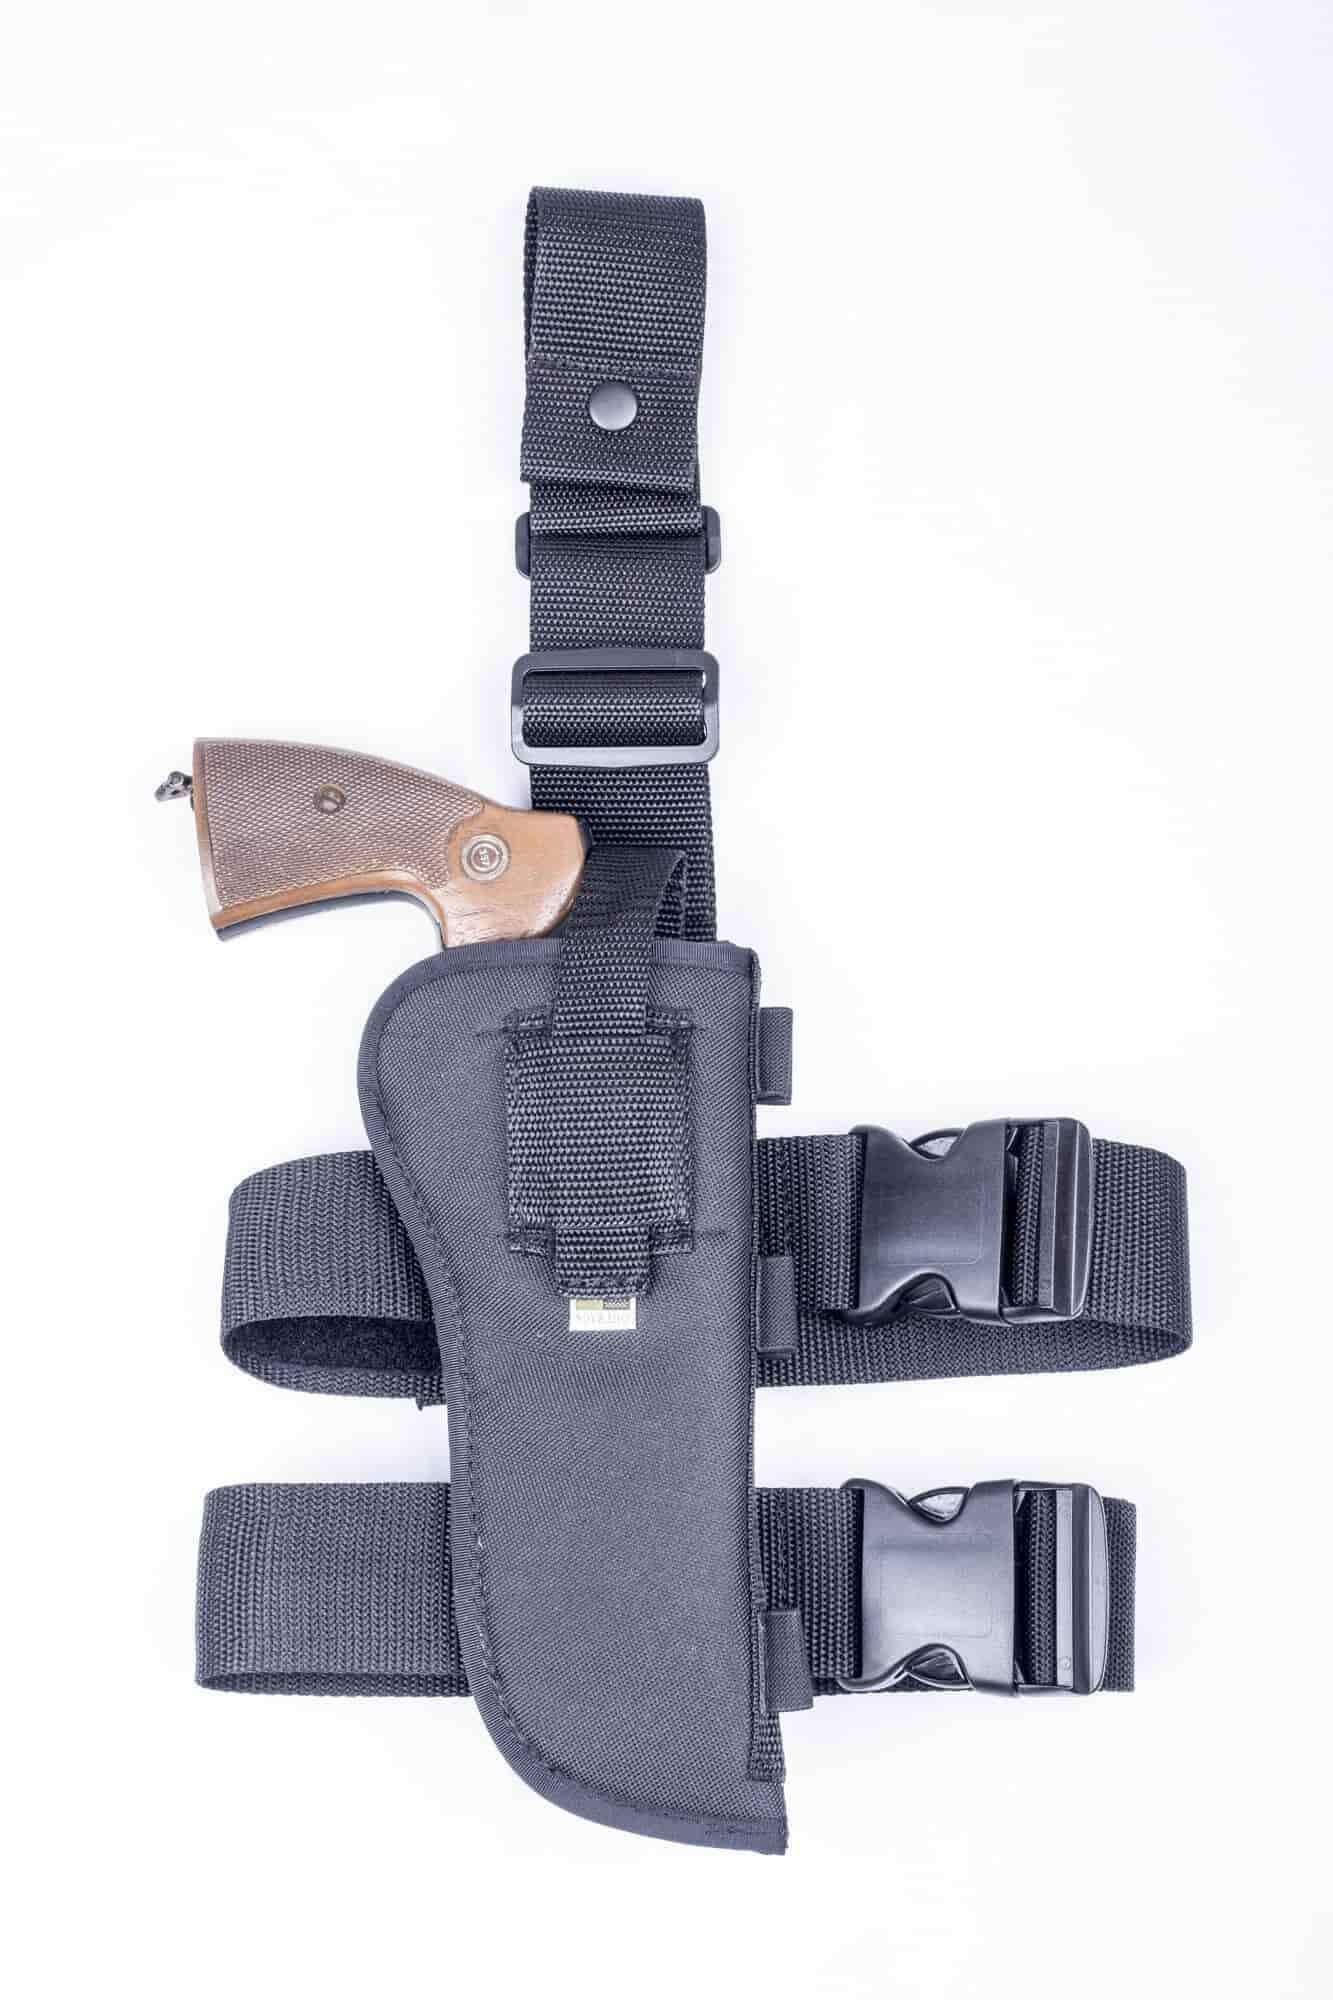 NTAC11 · Nylon Thigh Holster with Ammo Loops · For most 6 5-7